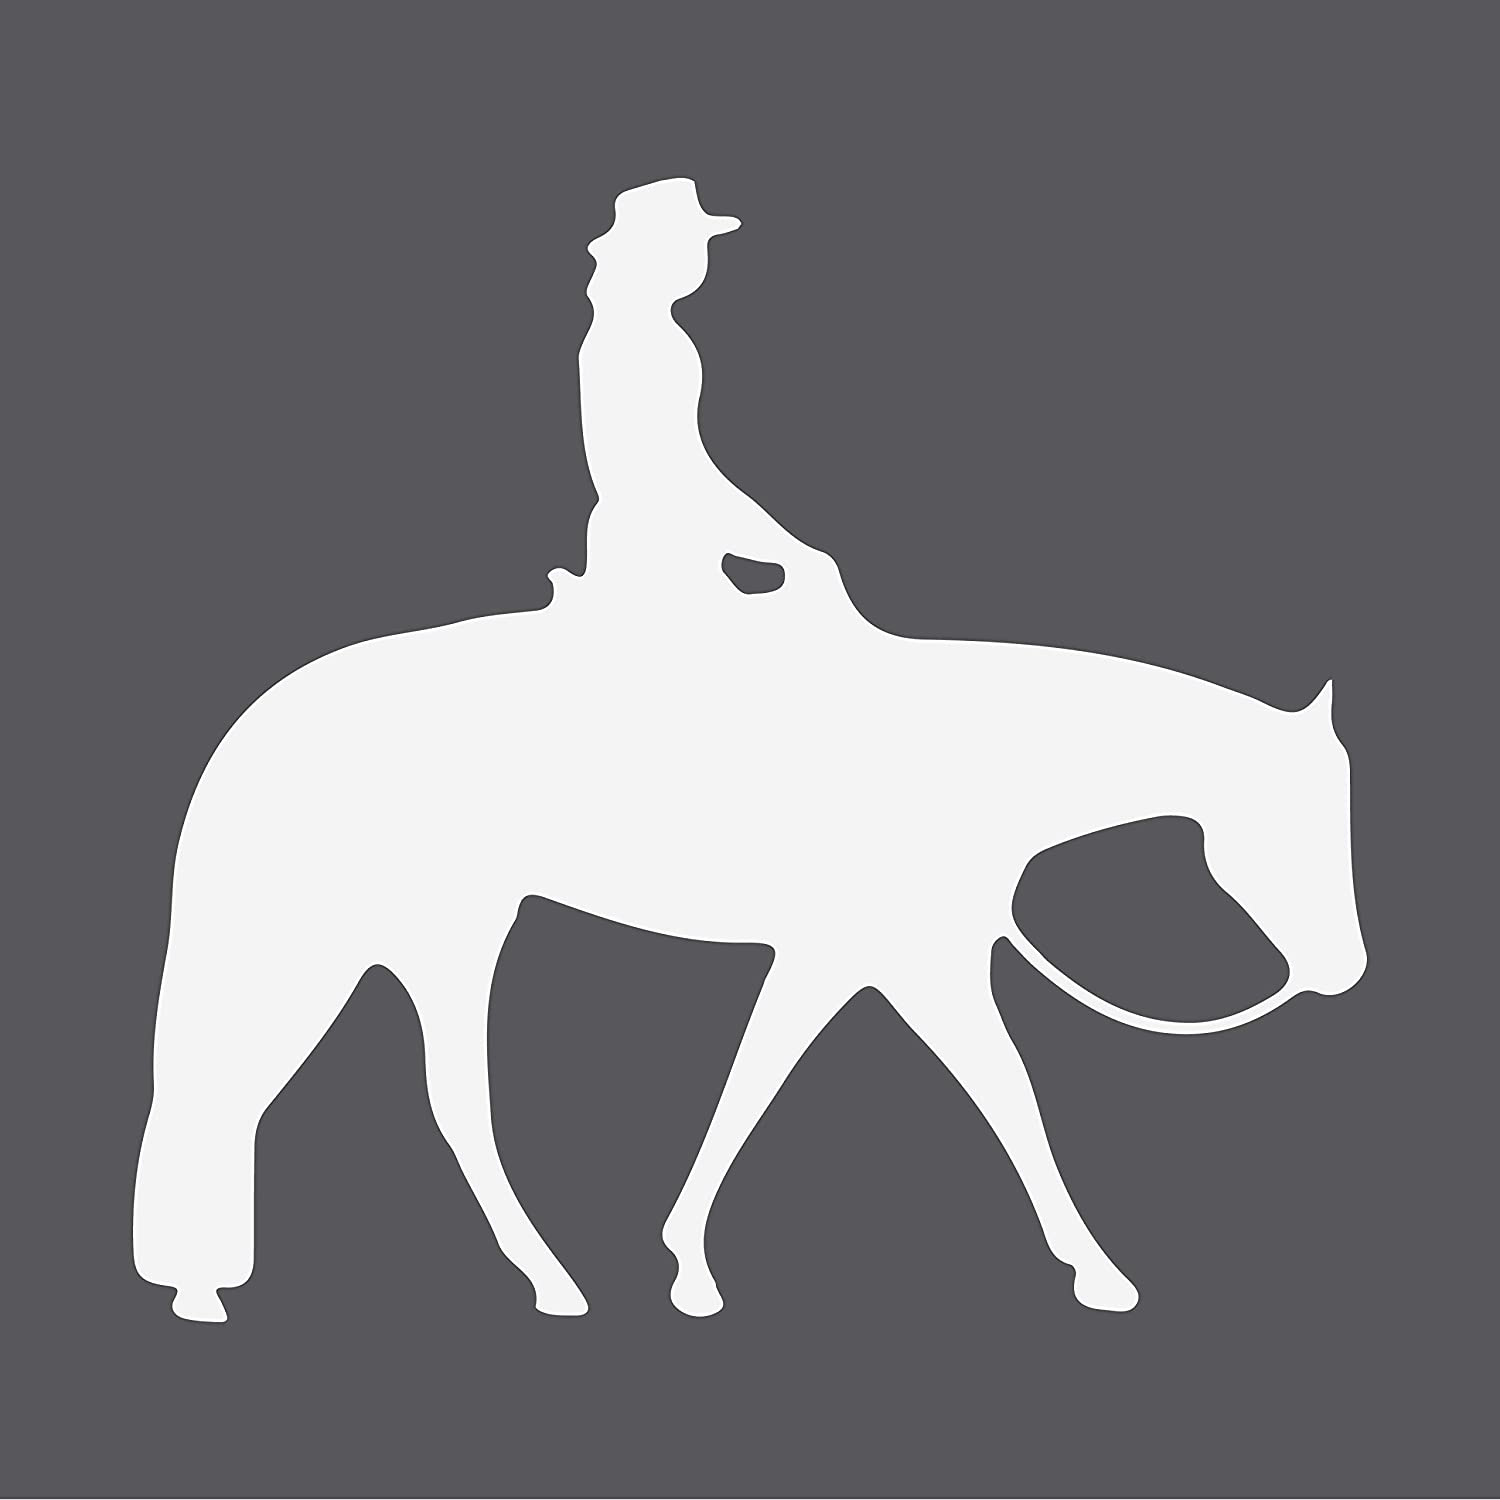 2 HORSE LOVE LIFE  sticker vinyl decal for car and others FINISH GLOSSY